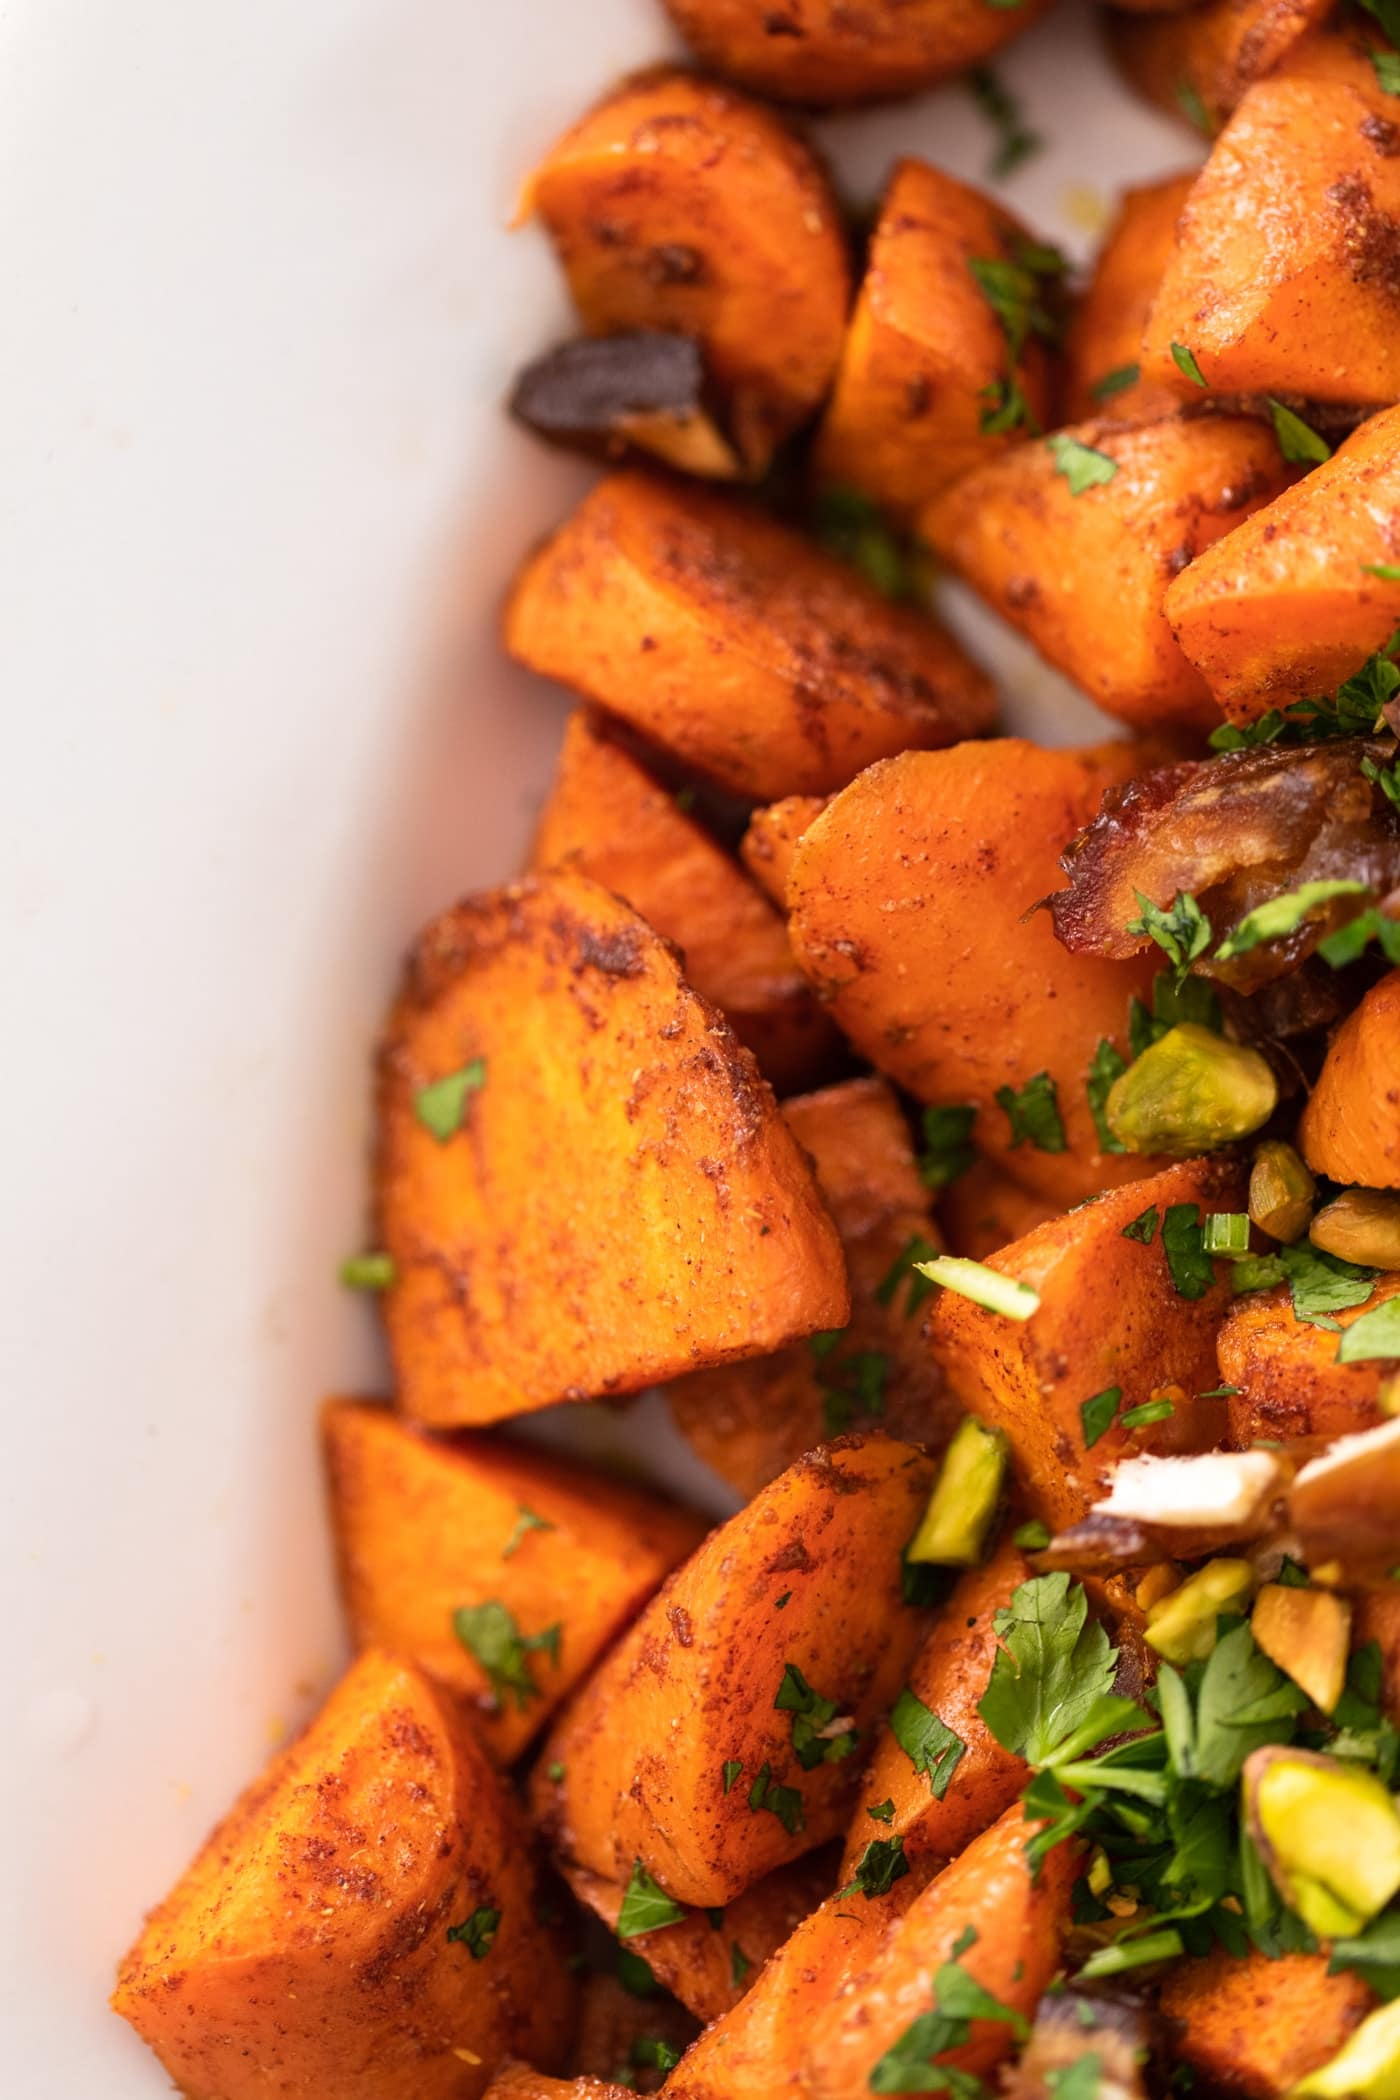 Orange carrots tossed in spice blend with brown flakes sitting in white bowl with bits of dates and carrots on top